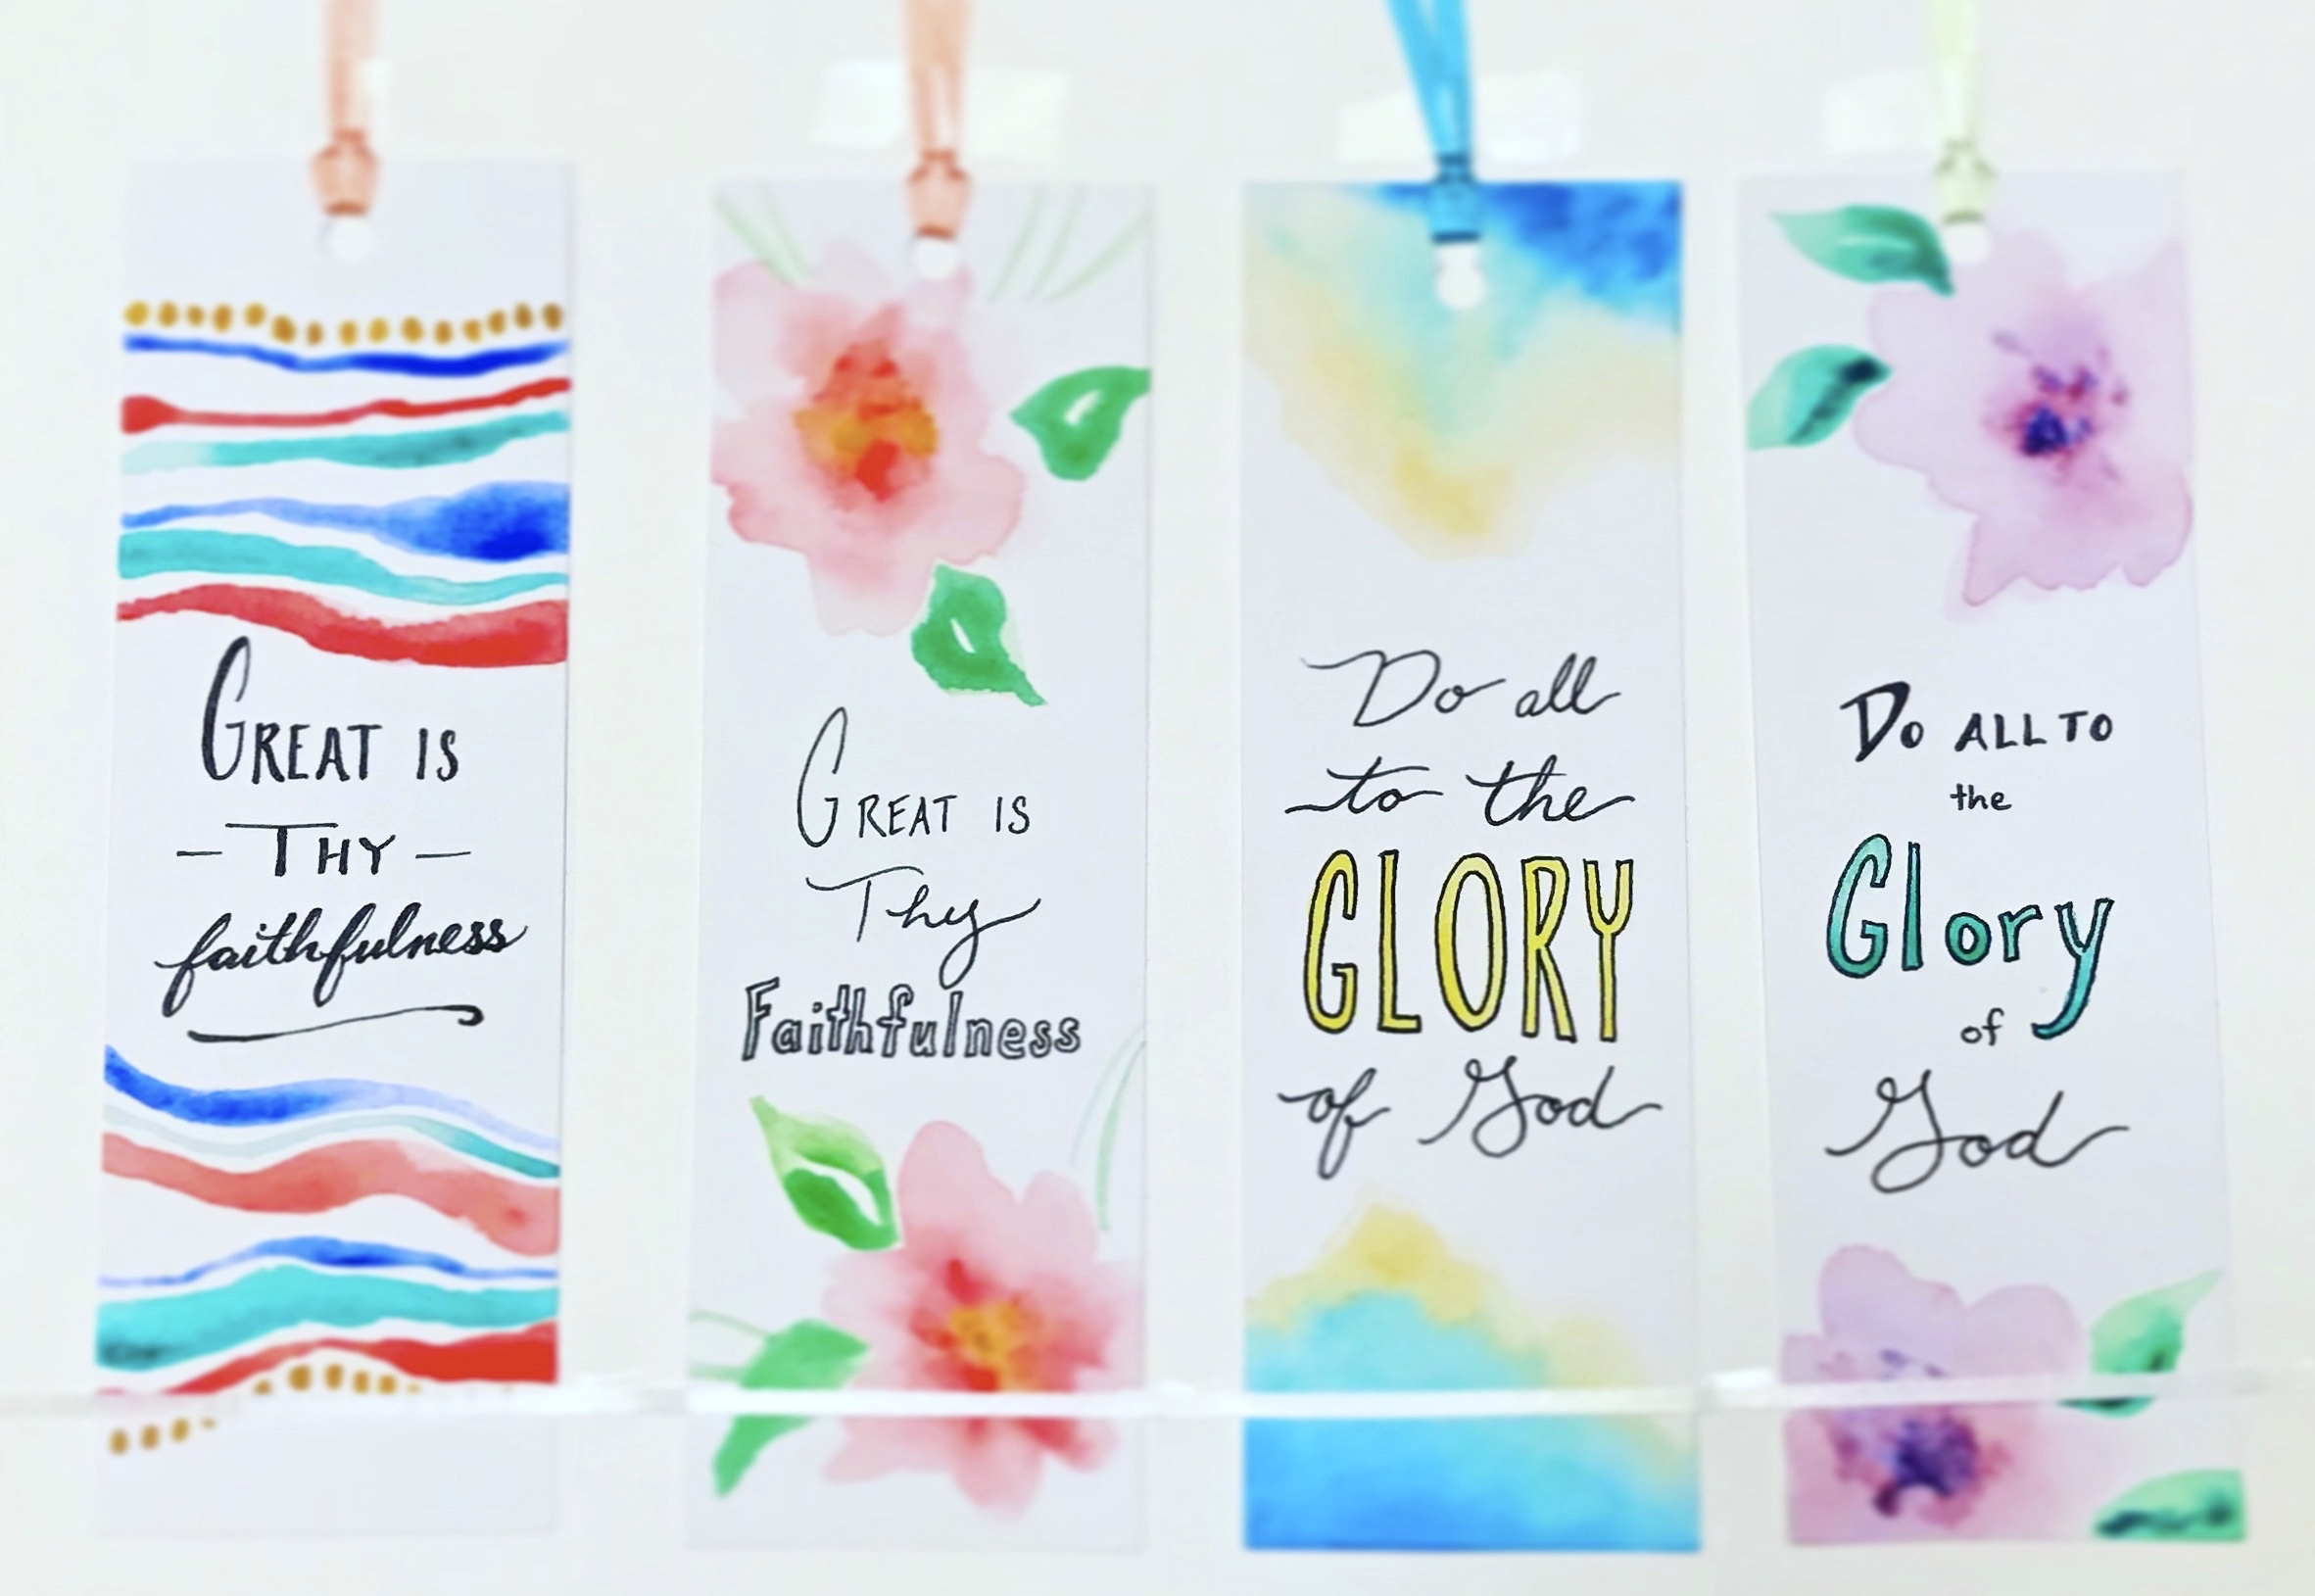 Watercolor_Colorful_Bookmarks_Bible